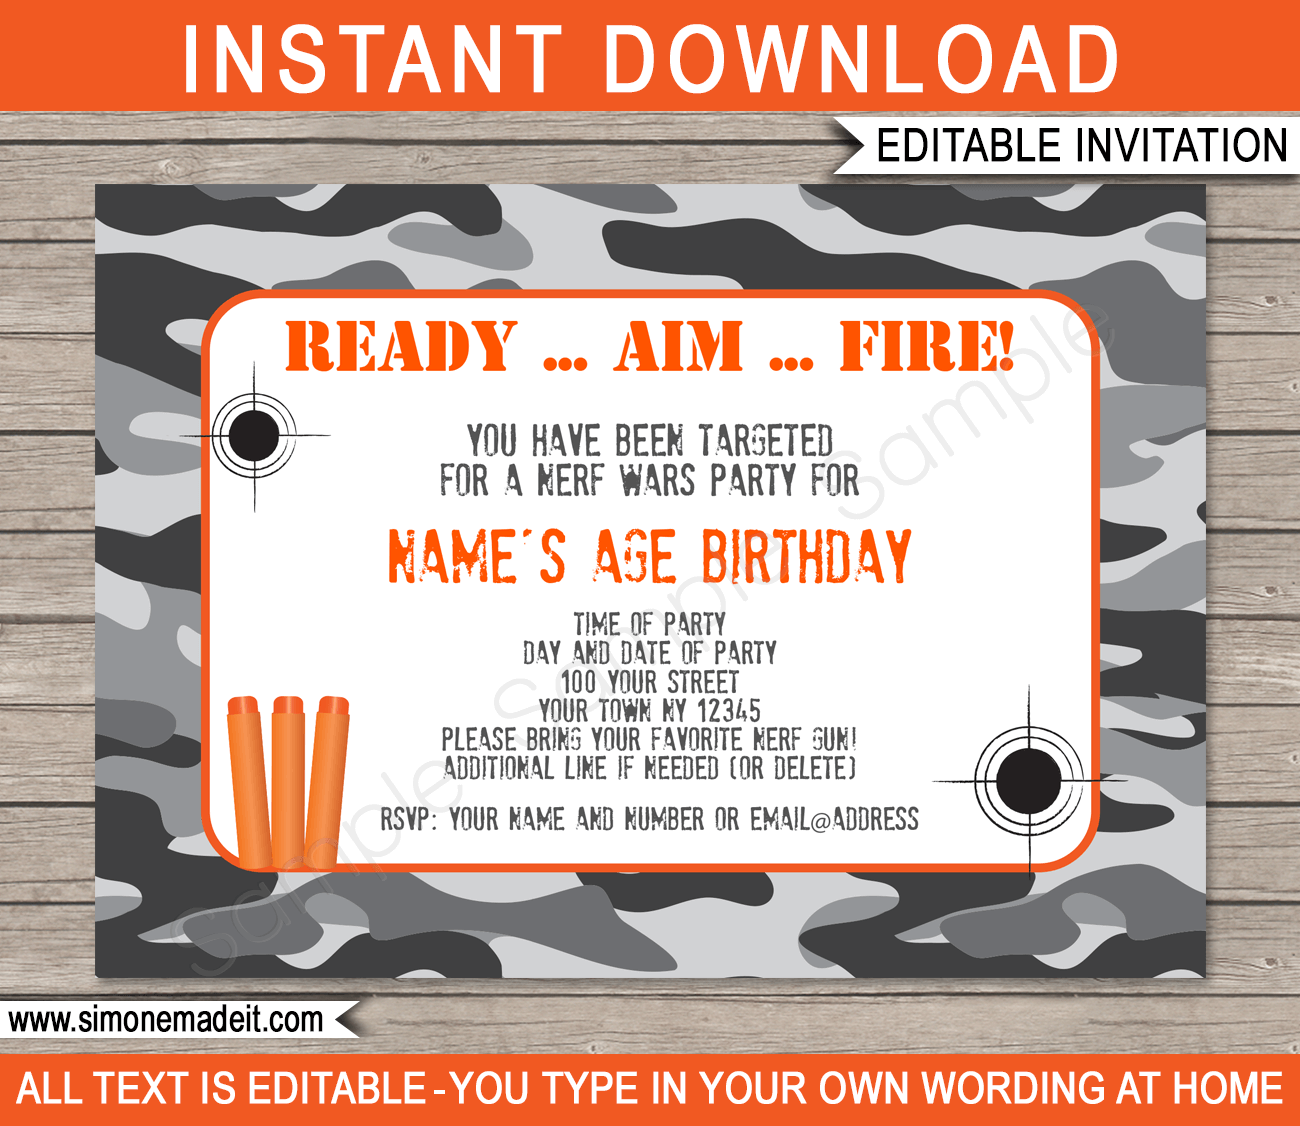 Nerf Party Invitations | Birthday Party | Editable DIY Theme Template |  INSTANT DOWNLOAD $7.50 Via  Free Birthday Party Invitation Template